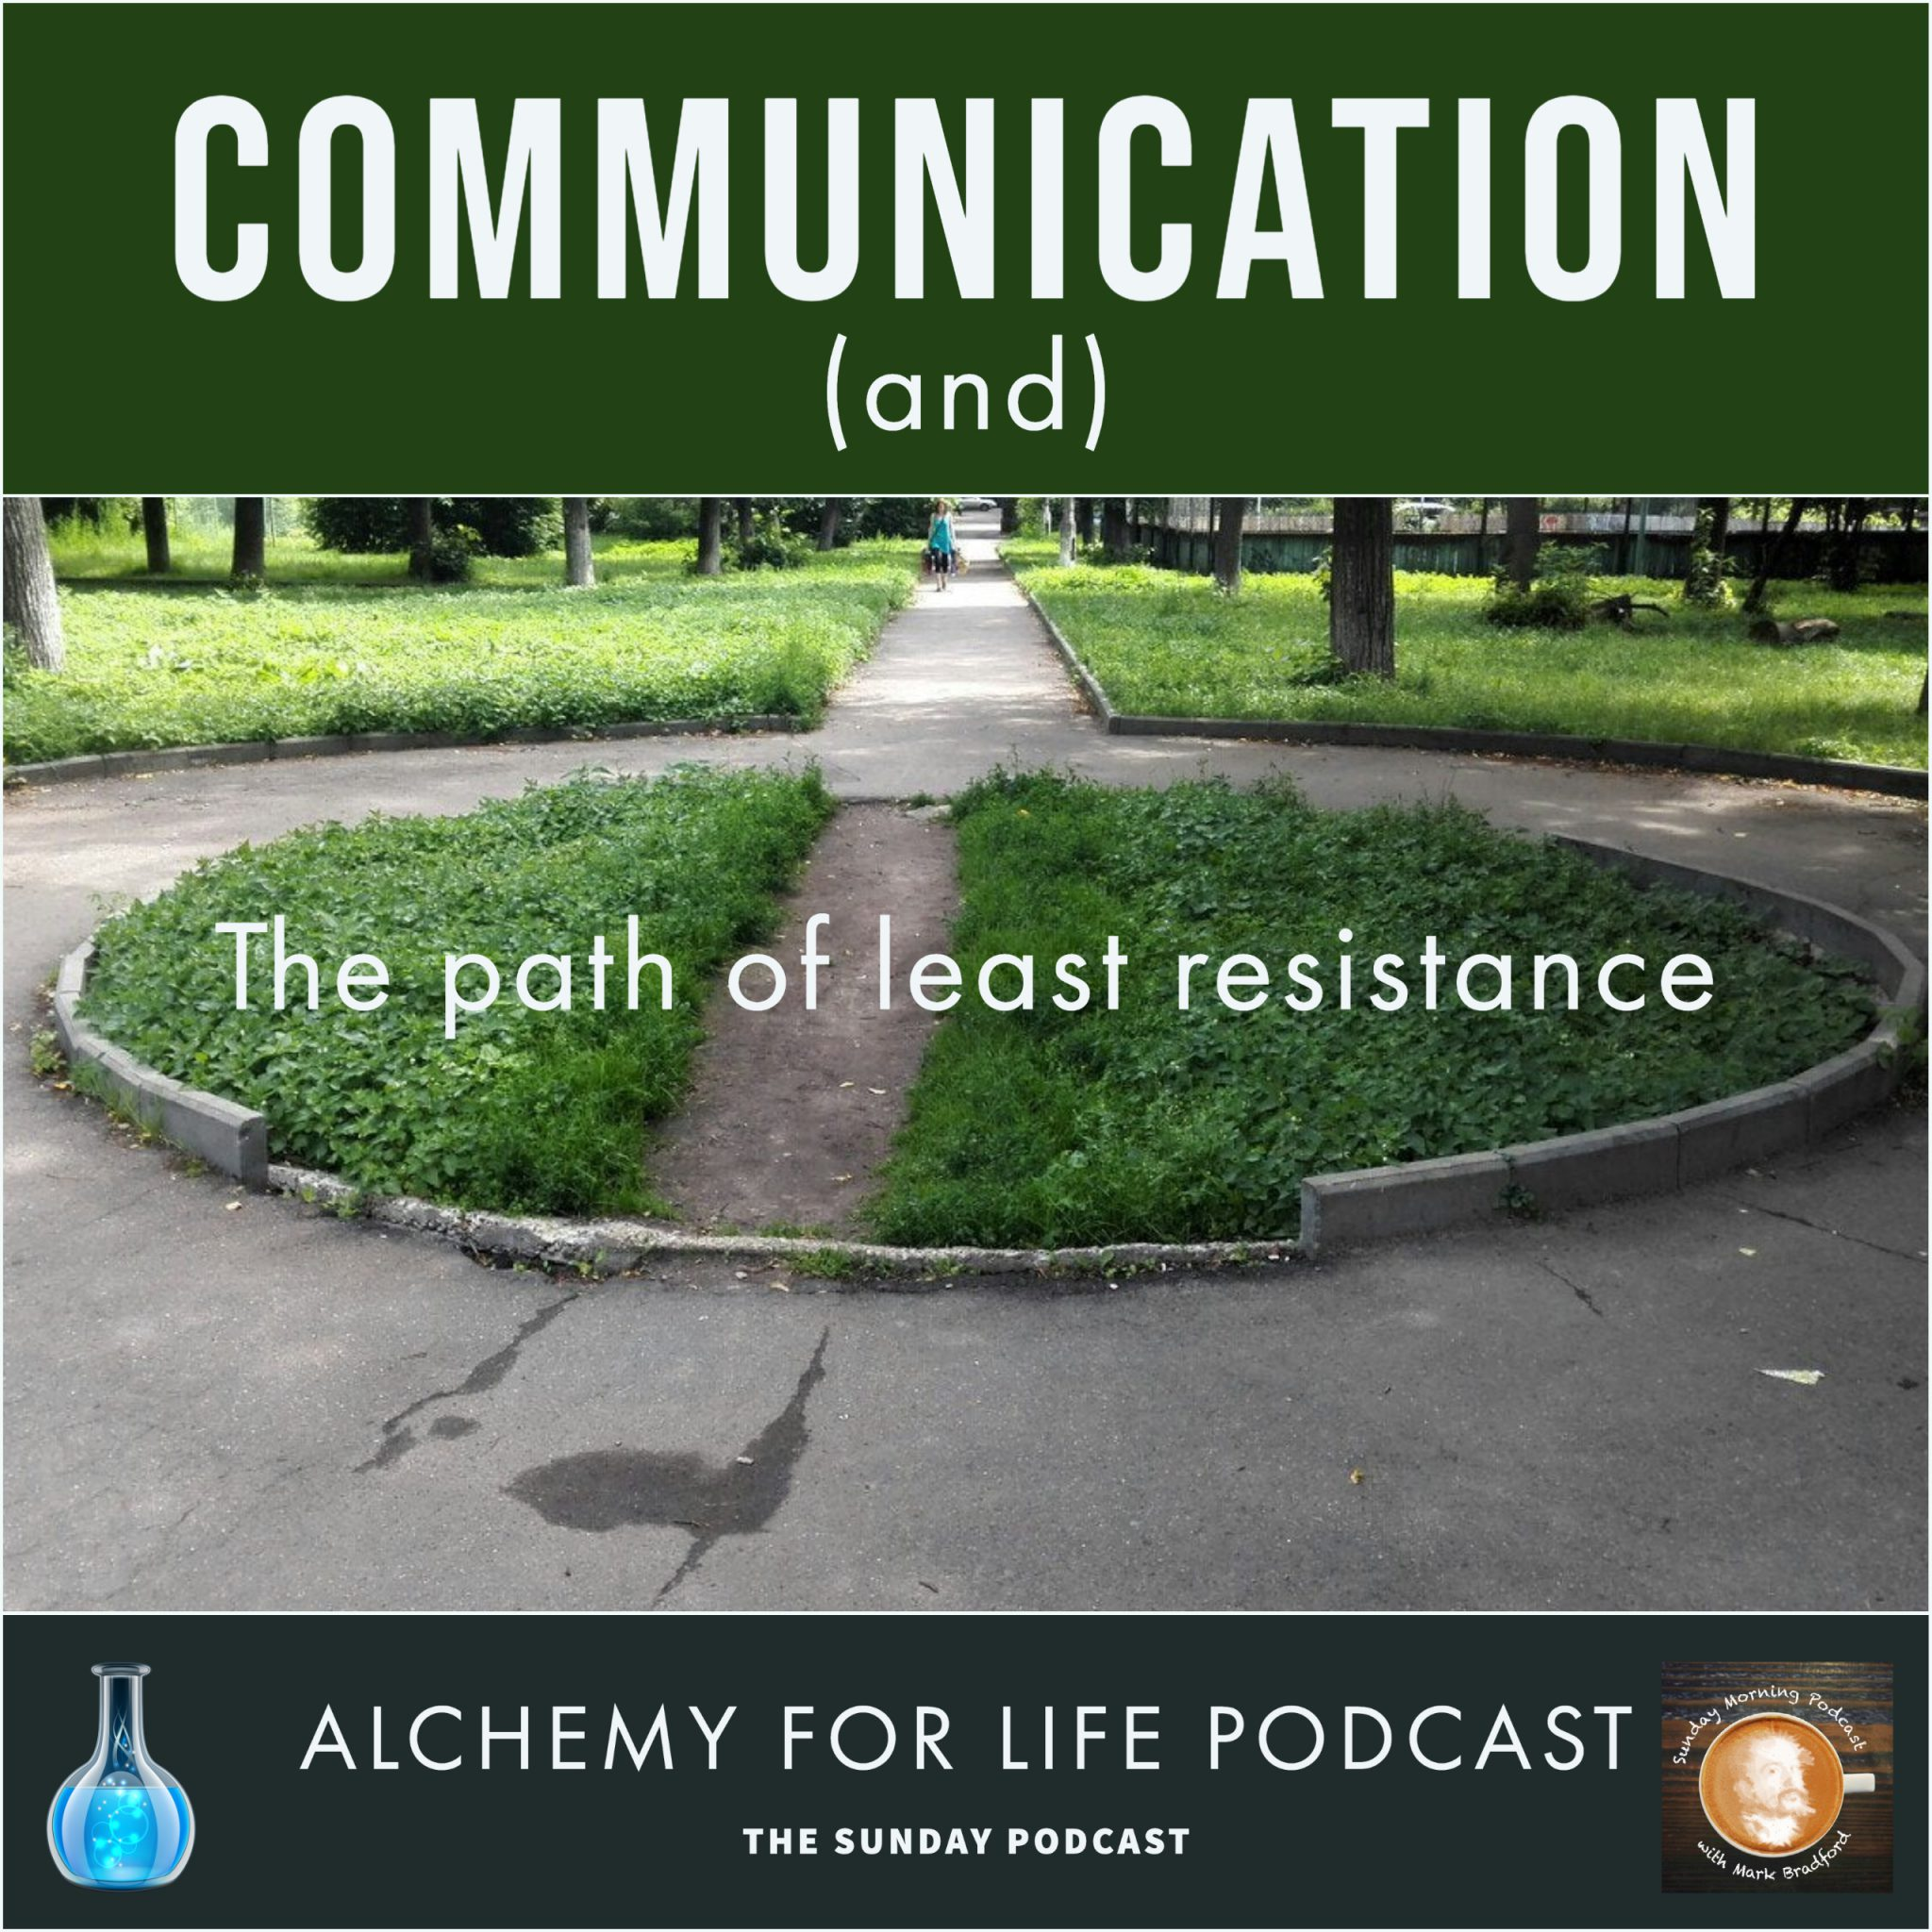 The path of lest resistance and communication